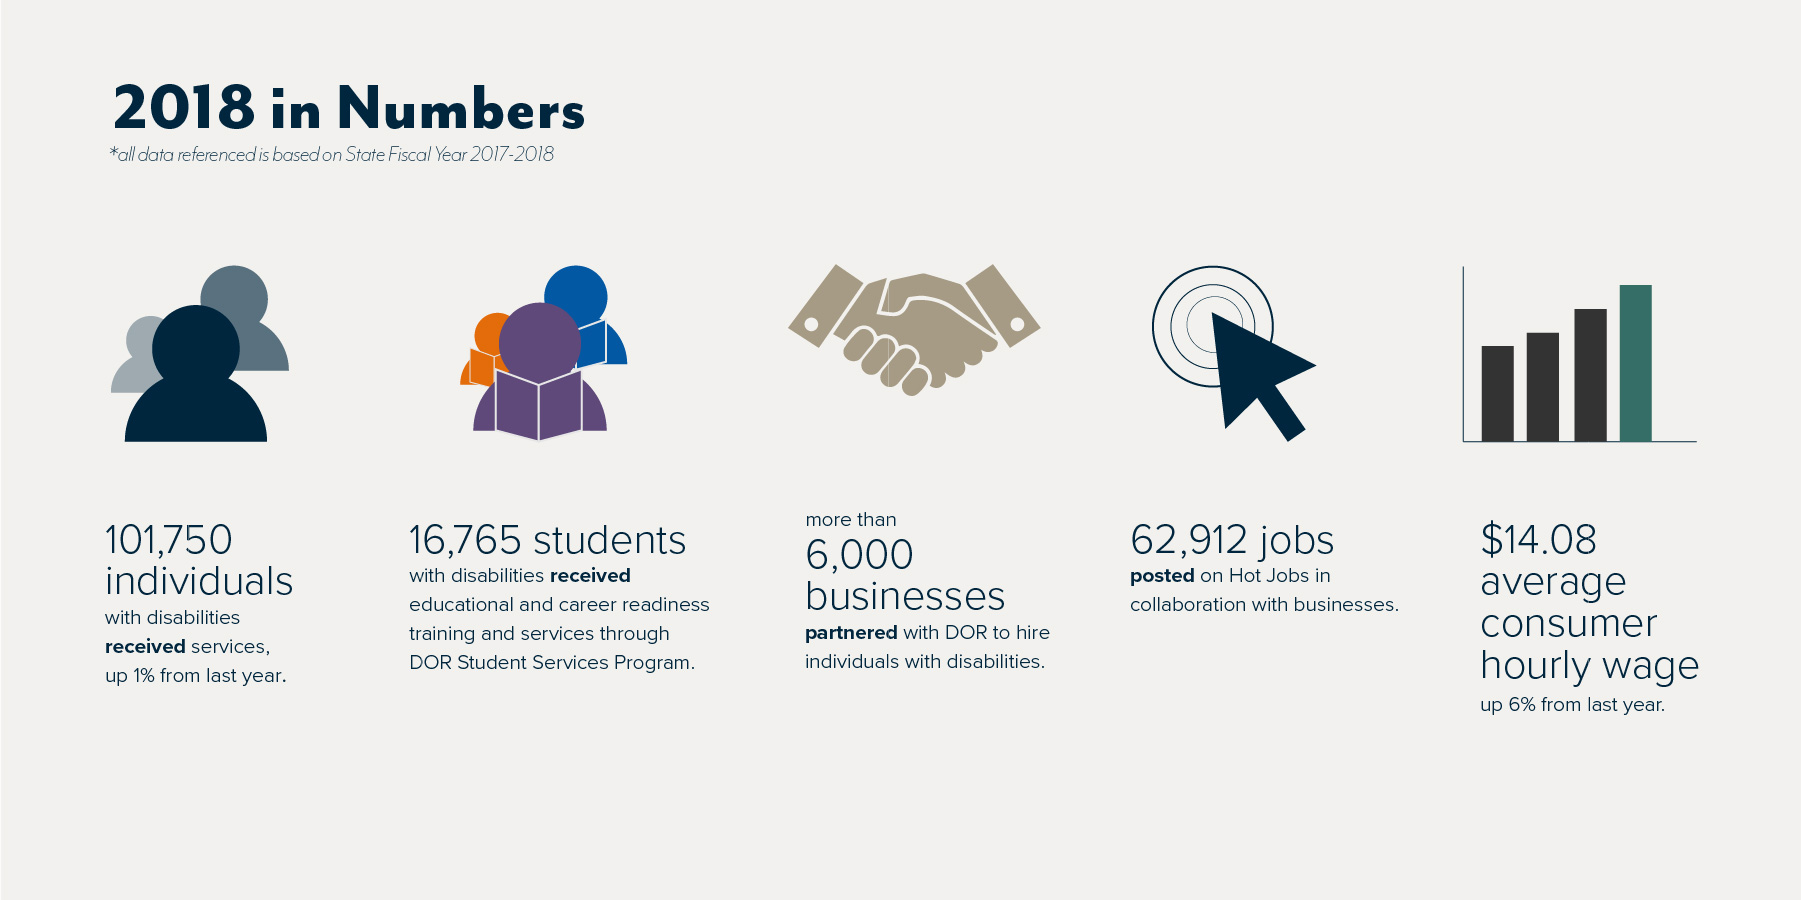 An infographic labeled 2018 in numbers. All data referenced is based on state fiscal year 2017-2018.  101,750 individuals with disabilities received services, up 1% from last year.   16,765 students with disabilities received educational and career readiness training and services through DOR Student Services Program.  More than 6,000 businesses partnered with DOR to hire individuals with disabilities.  62,912 job posted on Hot jobs in collaboration with businesses.  $14.08 average consumer hourly wage, up 6% from last year.